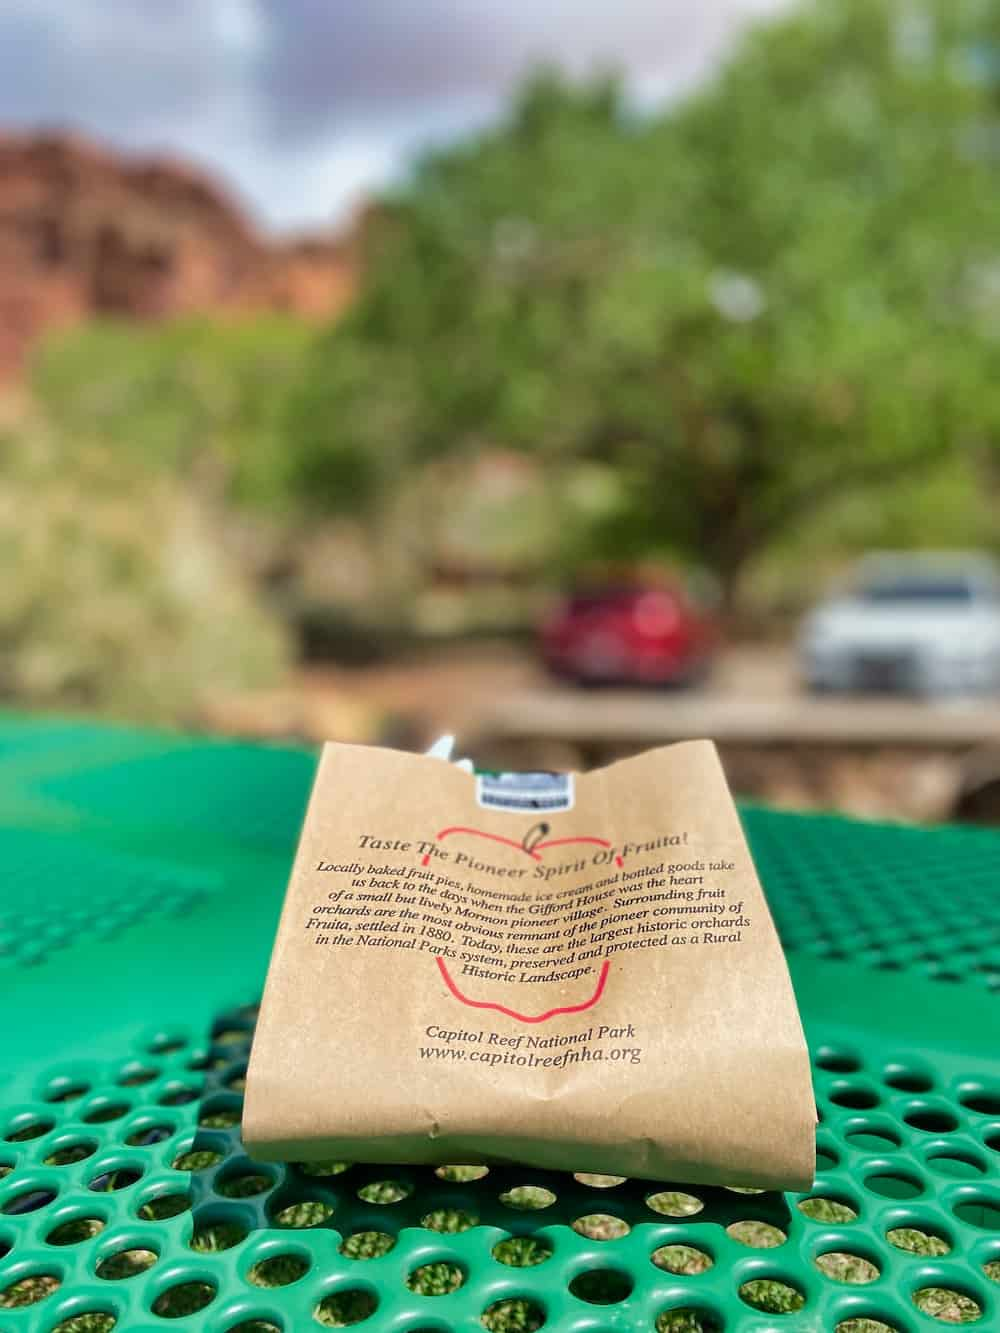 One Day in Capitol Reef - Picnic in Fruita